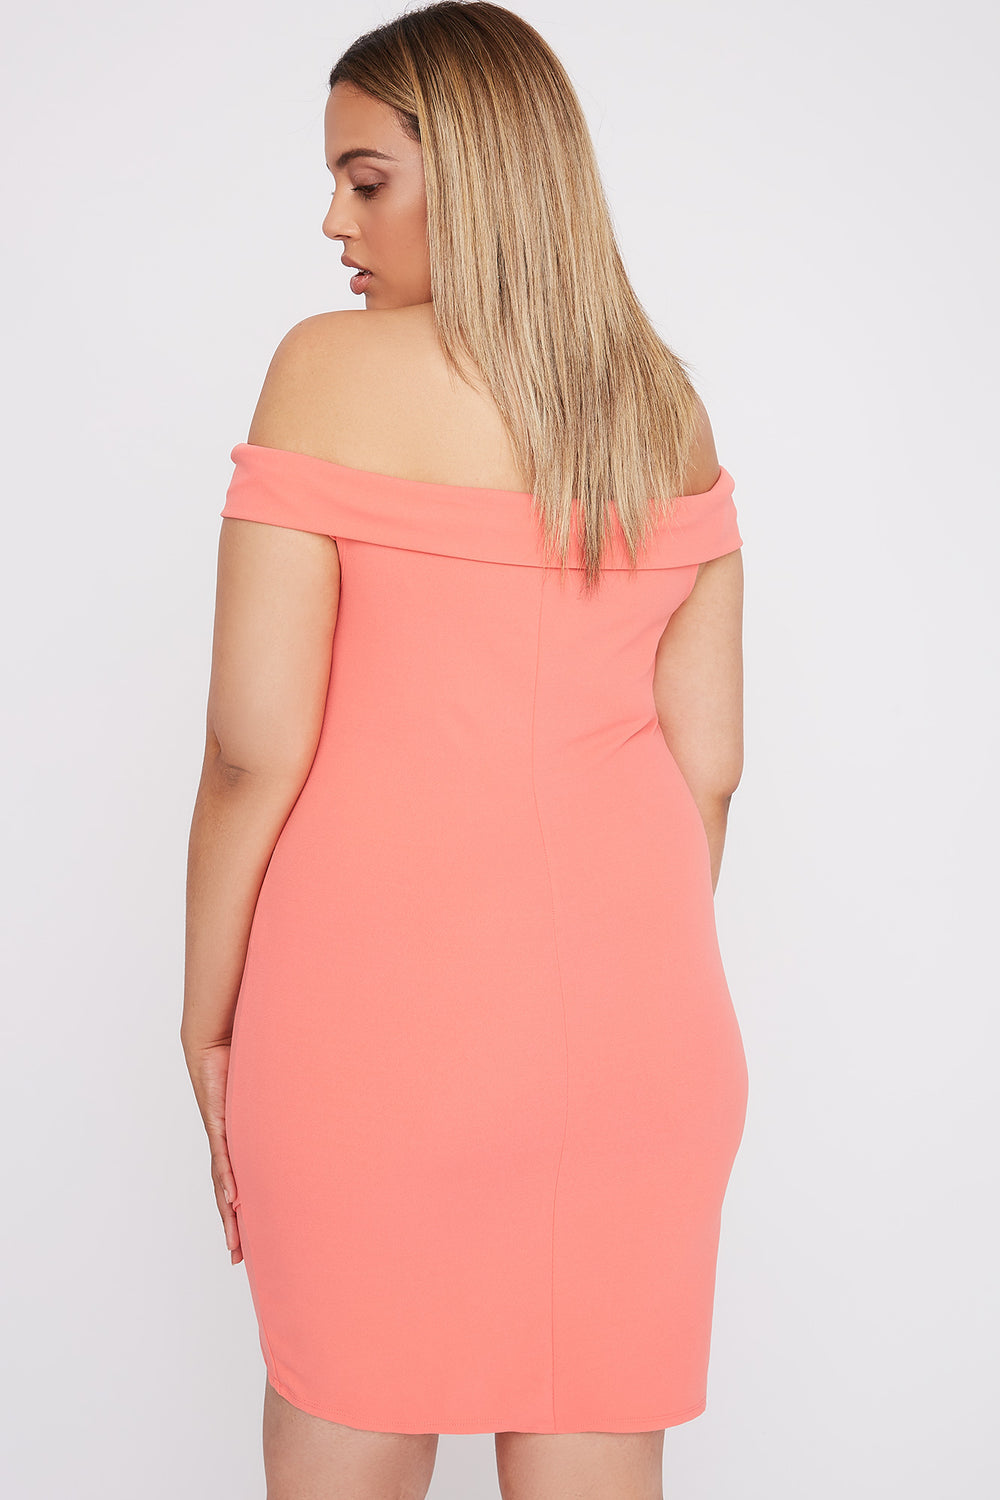 Plus Size Off the Shoulder Asymmetrical Mini Dress Peach